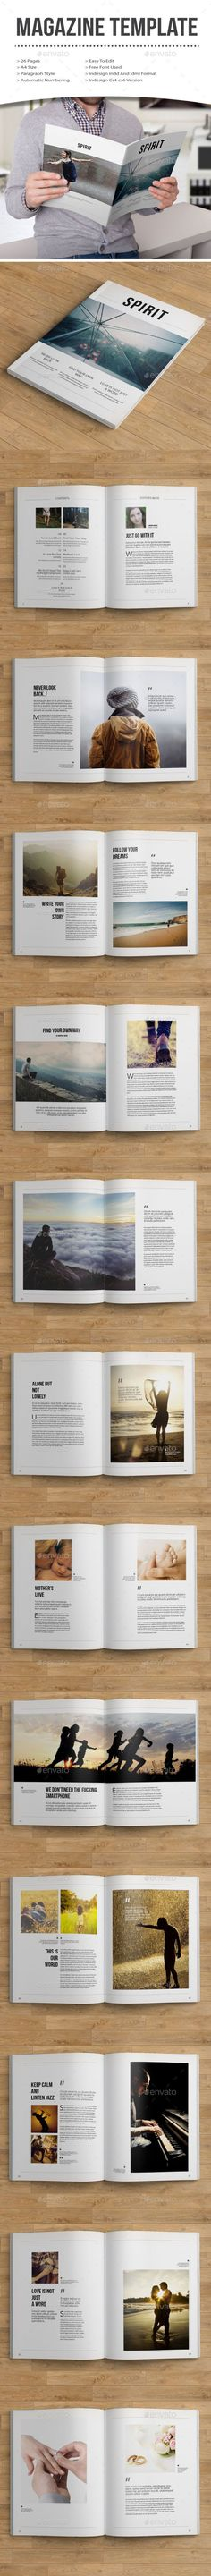 minimal magazine template — InDesign INDD #corporate #a4 • Available here → https://graphicriver.net/item/minimal-magazine-template/12336883?ref=pxcr